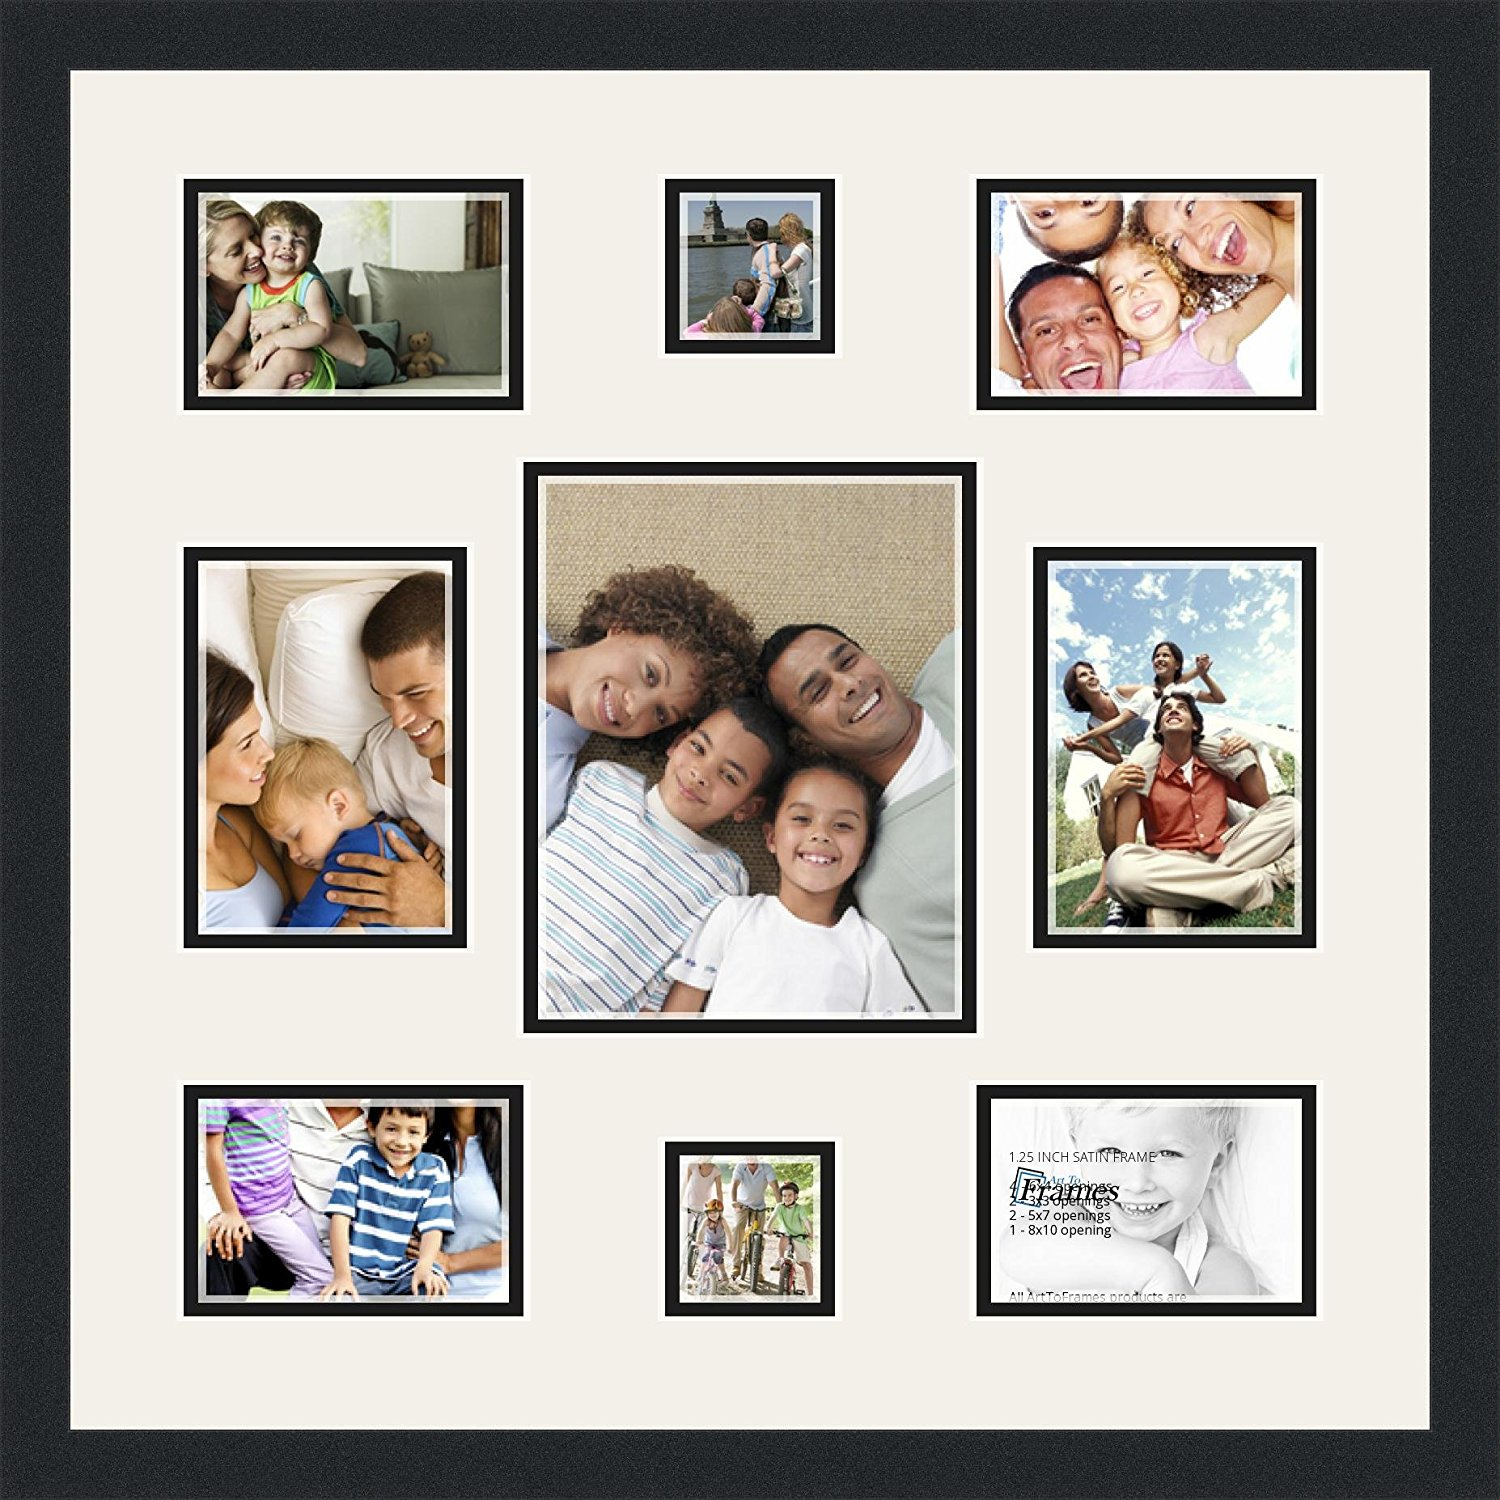 Art to Frames Double-Multimat-409-61/89-FRBW26079 Collage Photo Frame Double Mat with 1 - 8x10 and 2 - 5x7, 3x3 and 4 - 4x6 Openings and Satin Black Frame